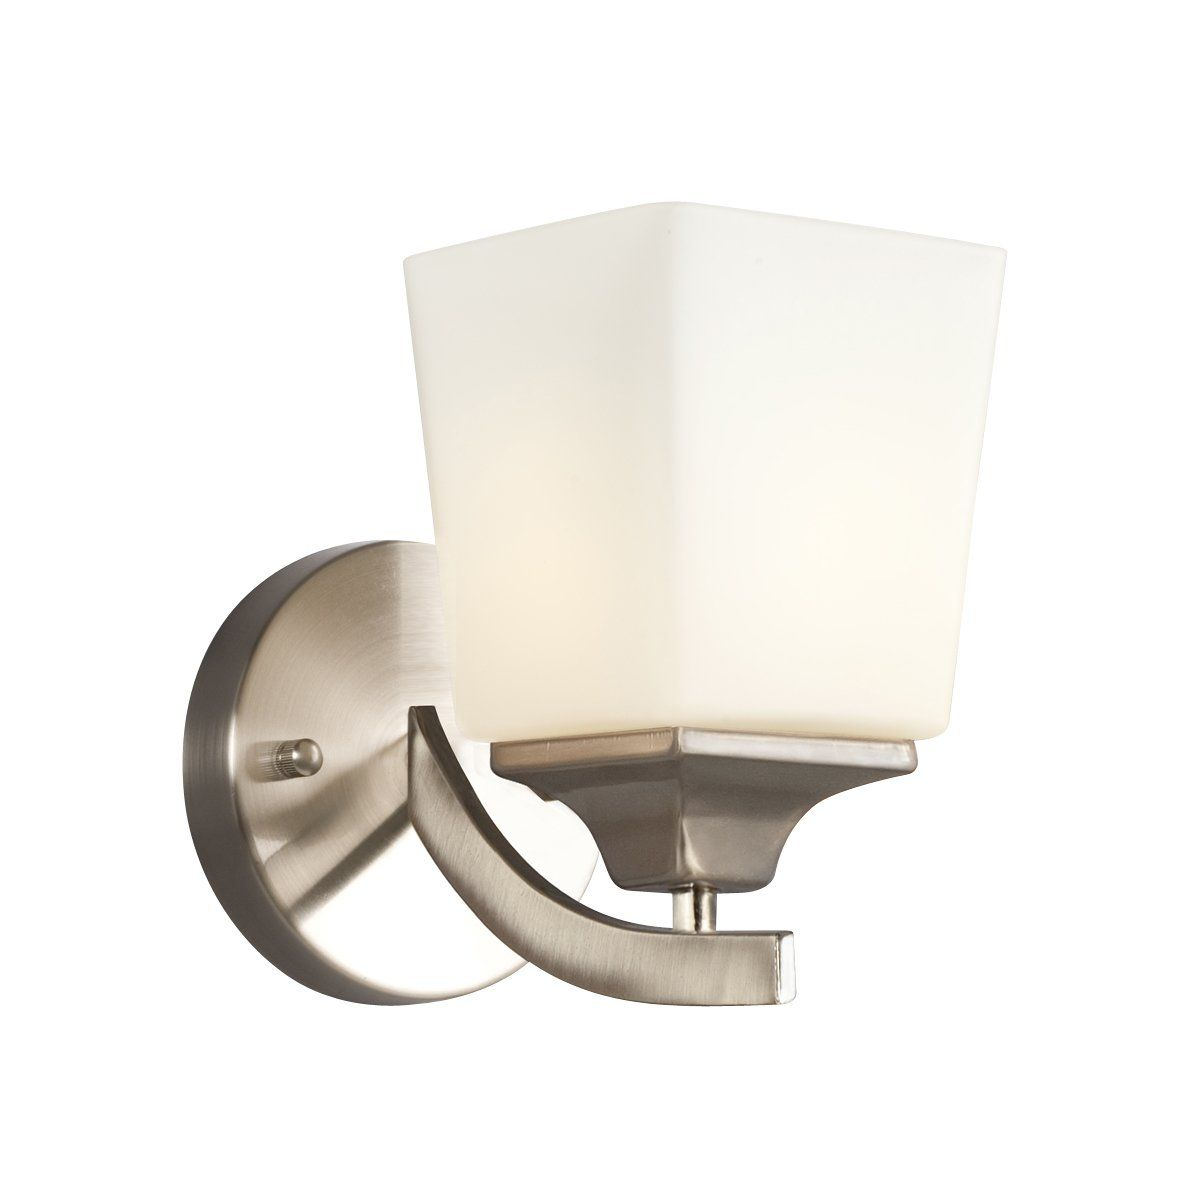 The Awesome Web Shop Galaxy Lighting Newburry Wall Sconce Bathroom Light at Lowe us Canada Find our selection of wall sconces at the lowest price guaranteed with